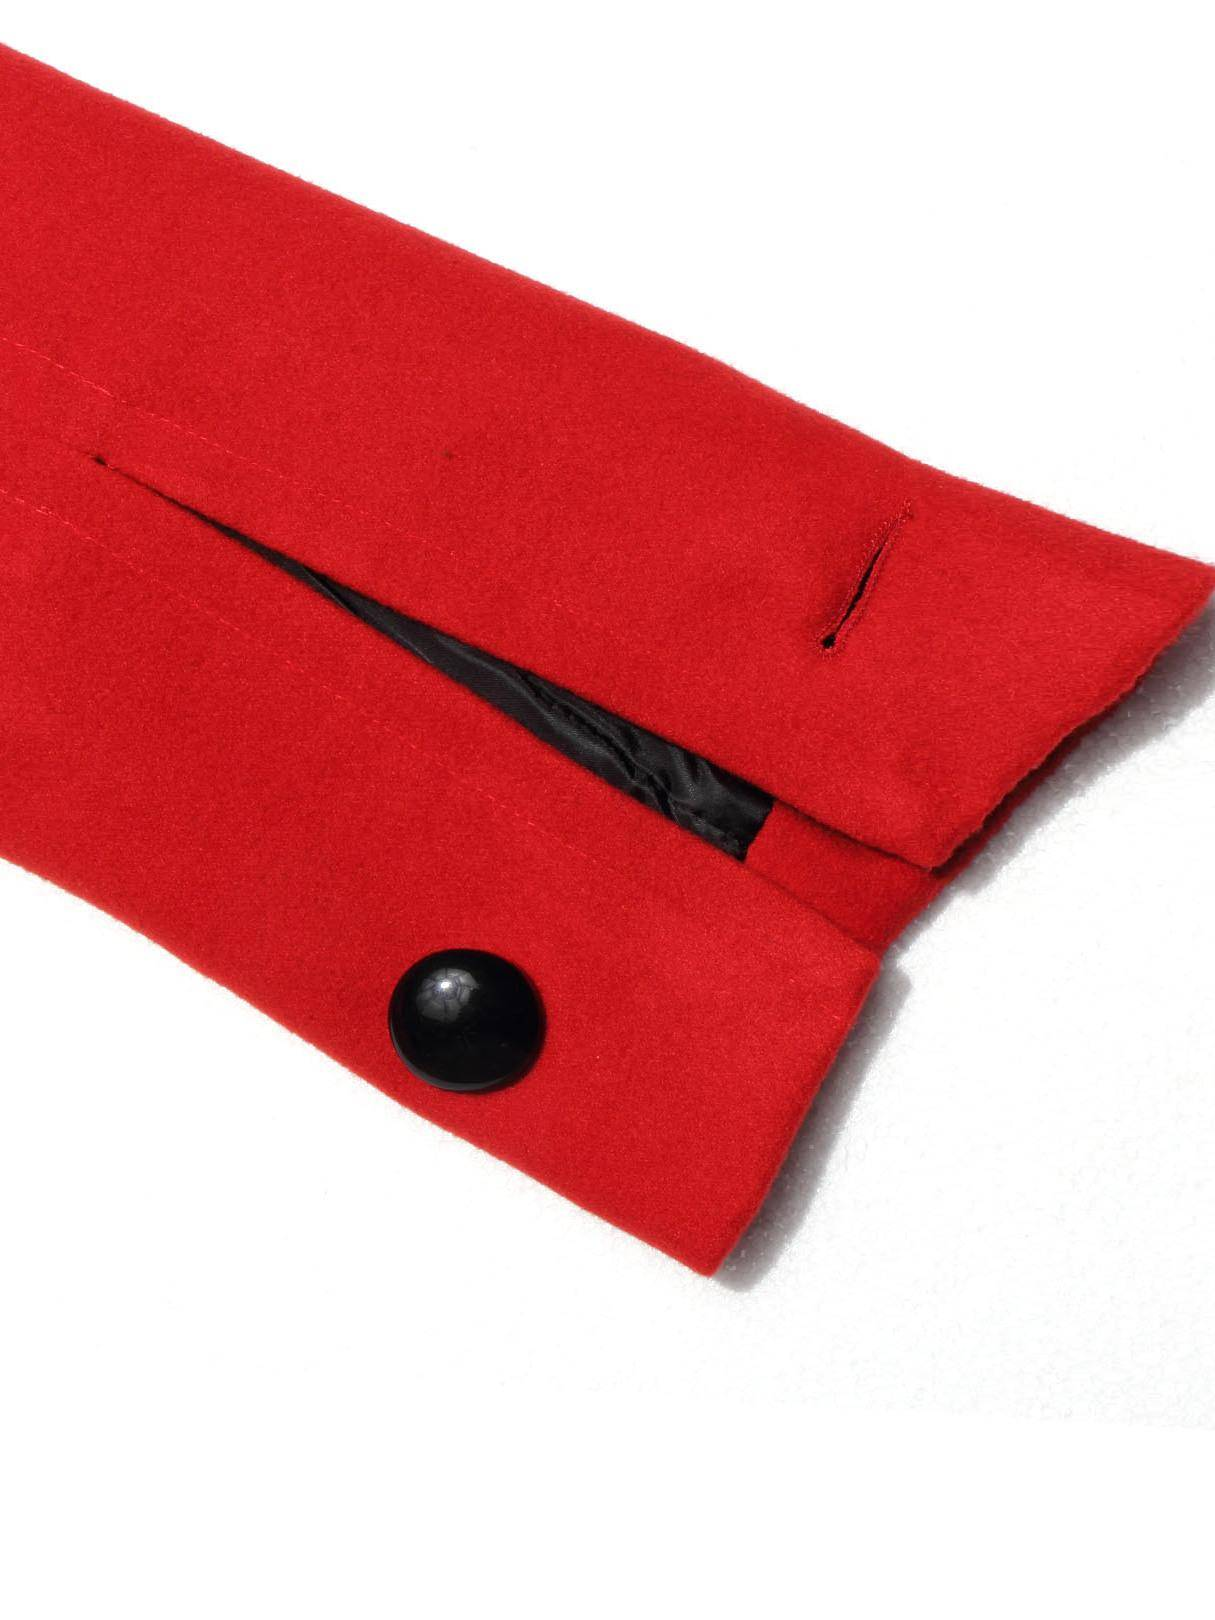 Longline Duster Coat in Red от Yoins.com INT